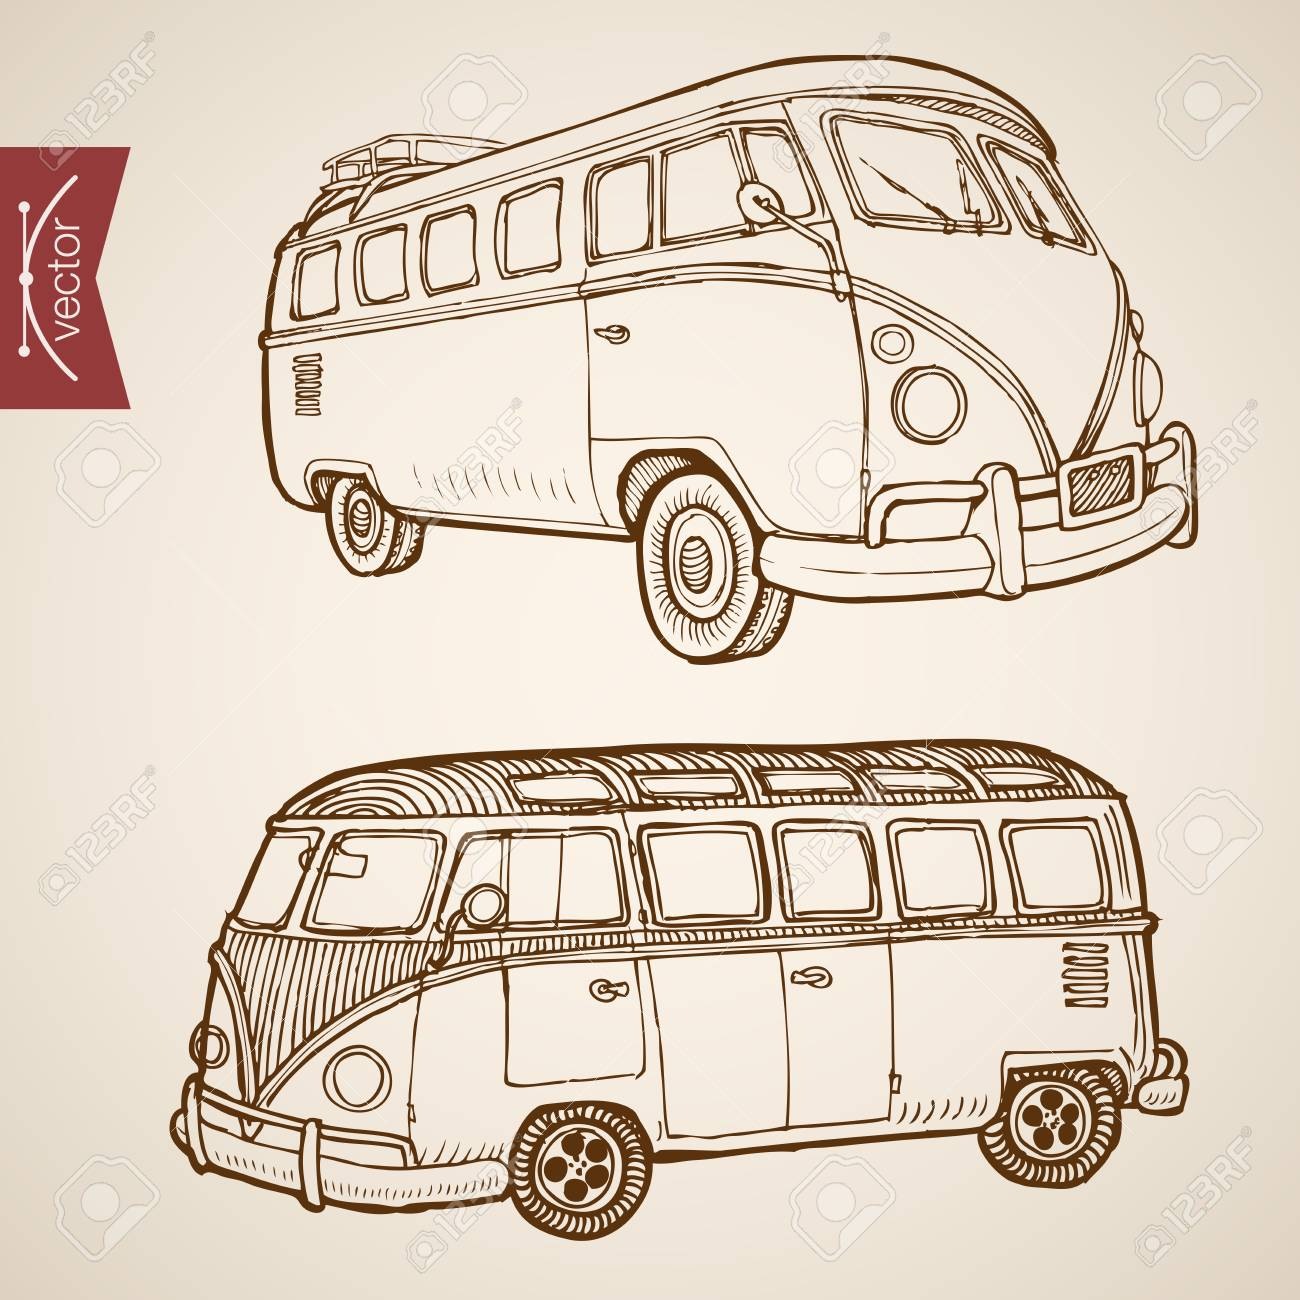 Engraving vintage hand drawn vector retro bus collection pencil